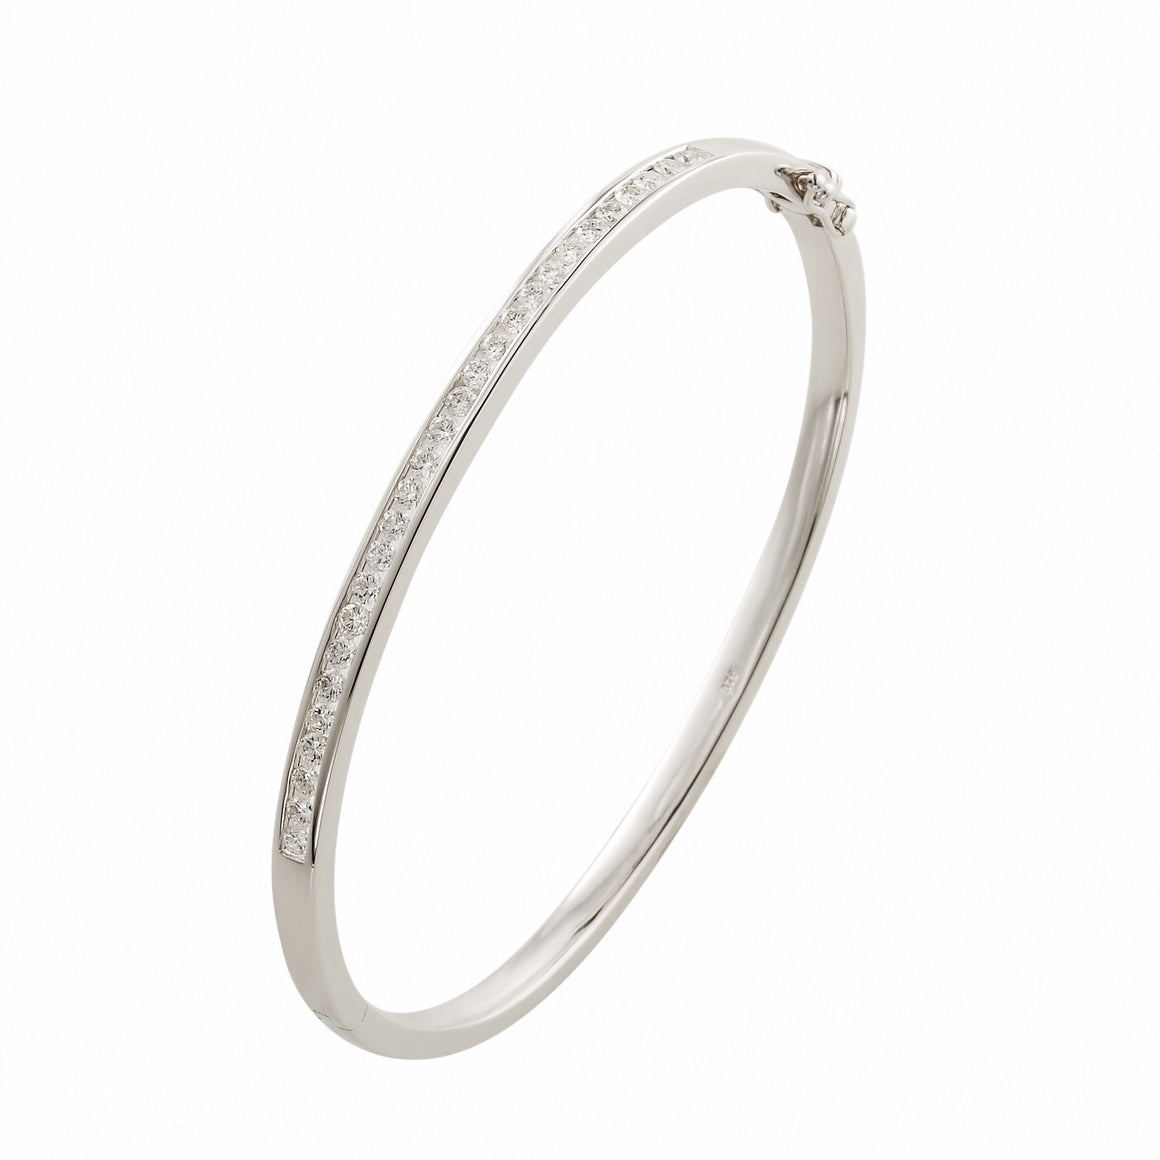 Channel Set Diamond 'Daniella ' Bangle - Gemma Stone  ABN:51 621 127 866